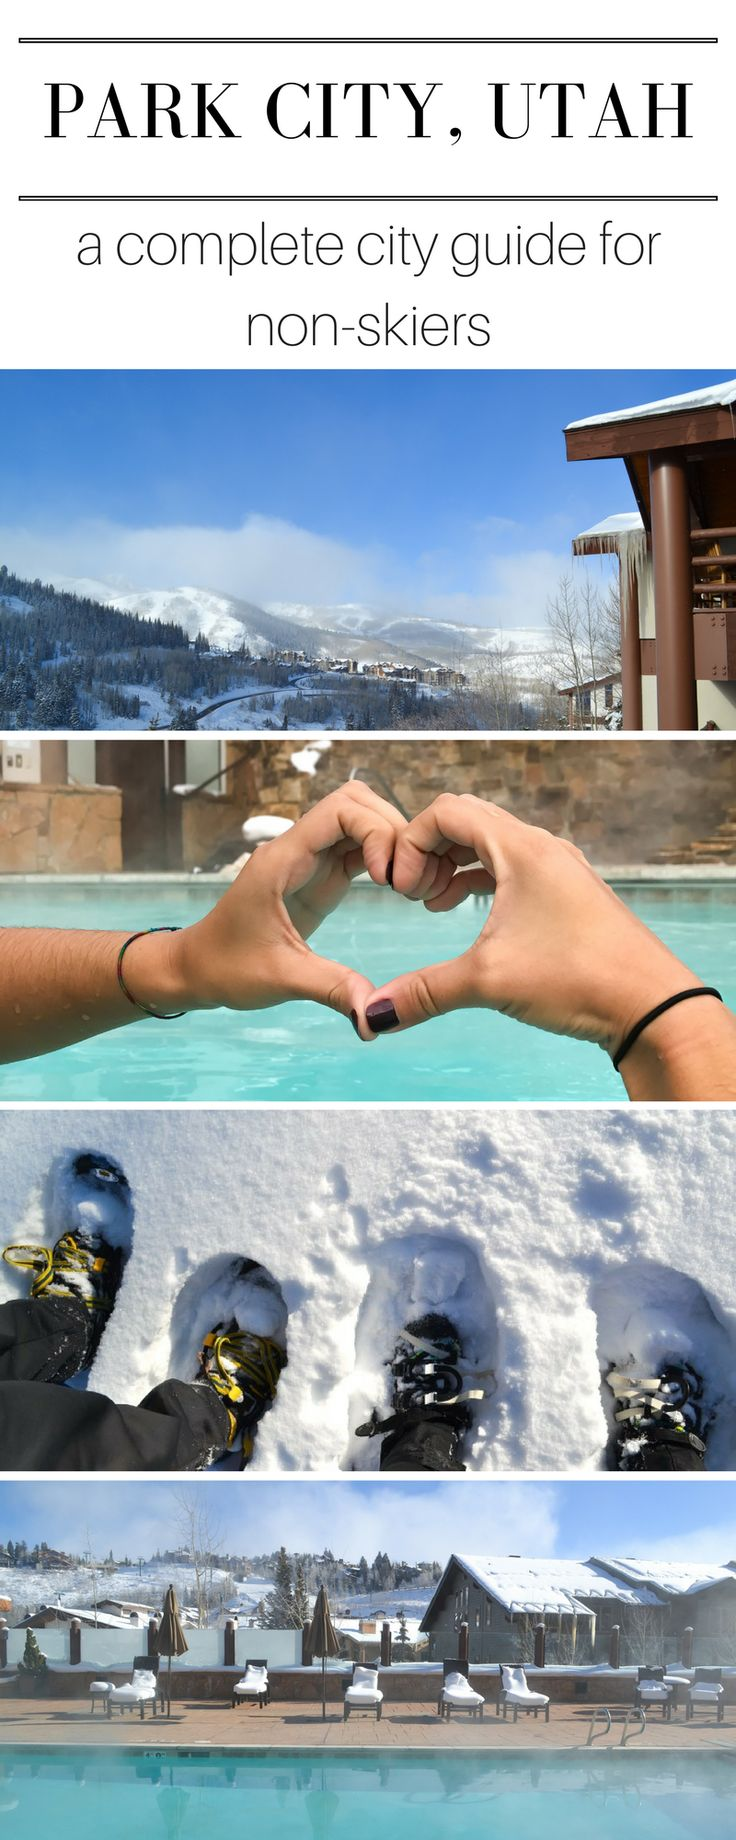 Make Park City Utah your next winter destination!  Besides Sundance Film Festival, there's just SO much more to to do in Park City besides ski, I promise!  This guide has everything you need and more for a complete weekend in this beautiful city of Park City!  There are so many things to do in Park City for the non-skier!